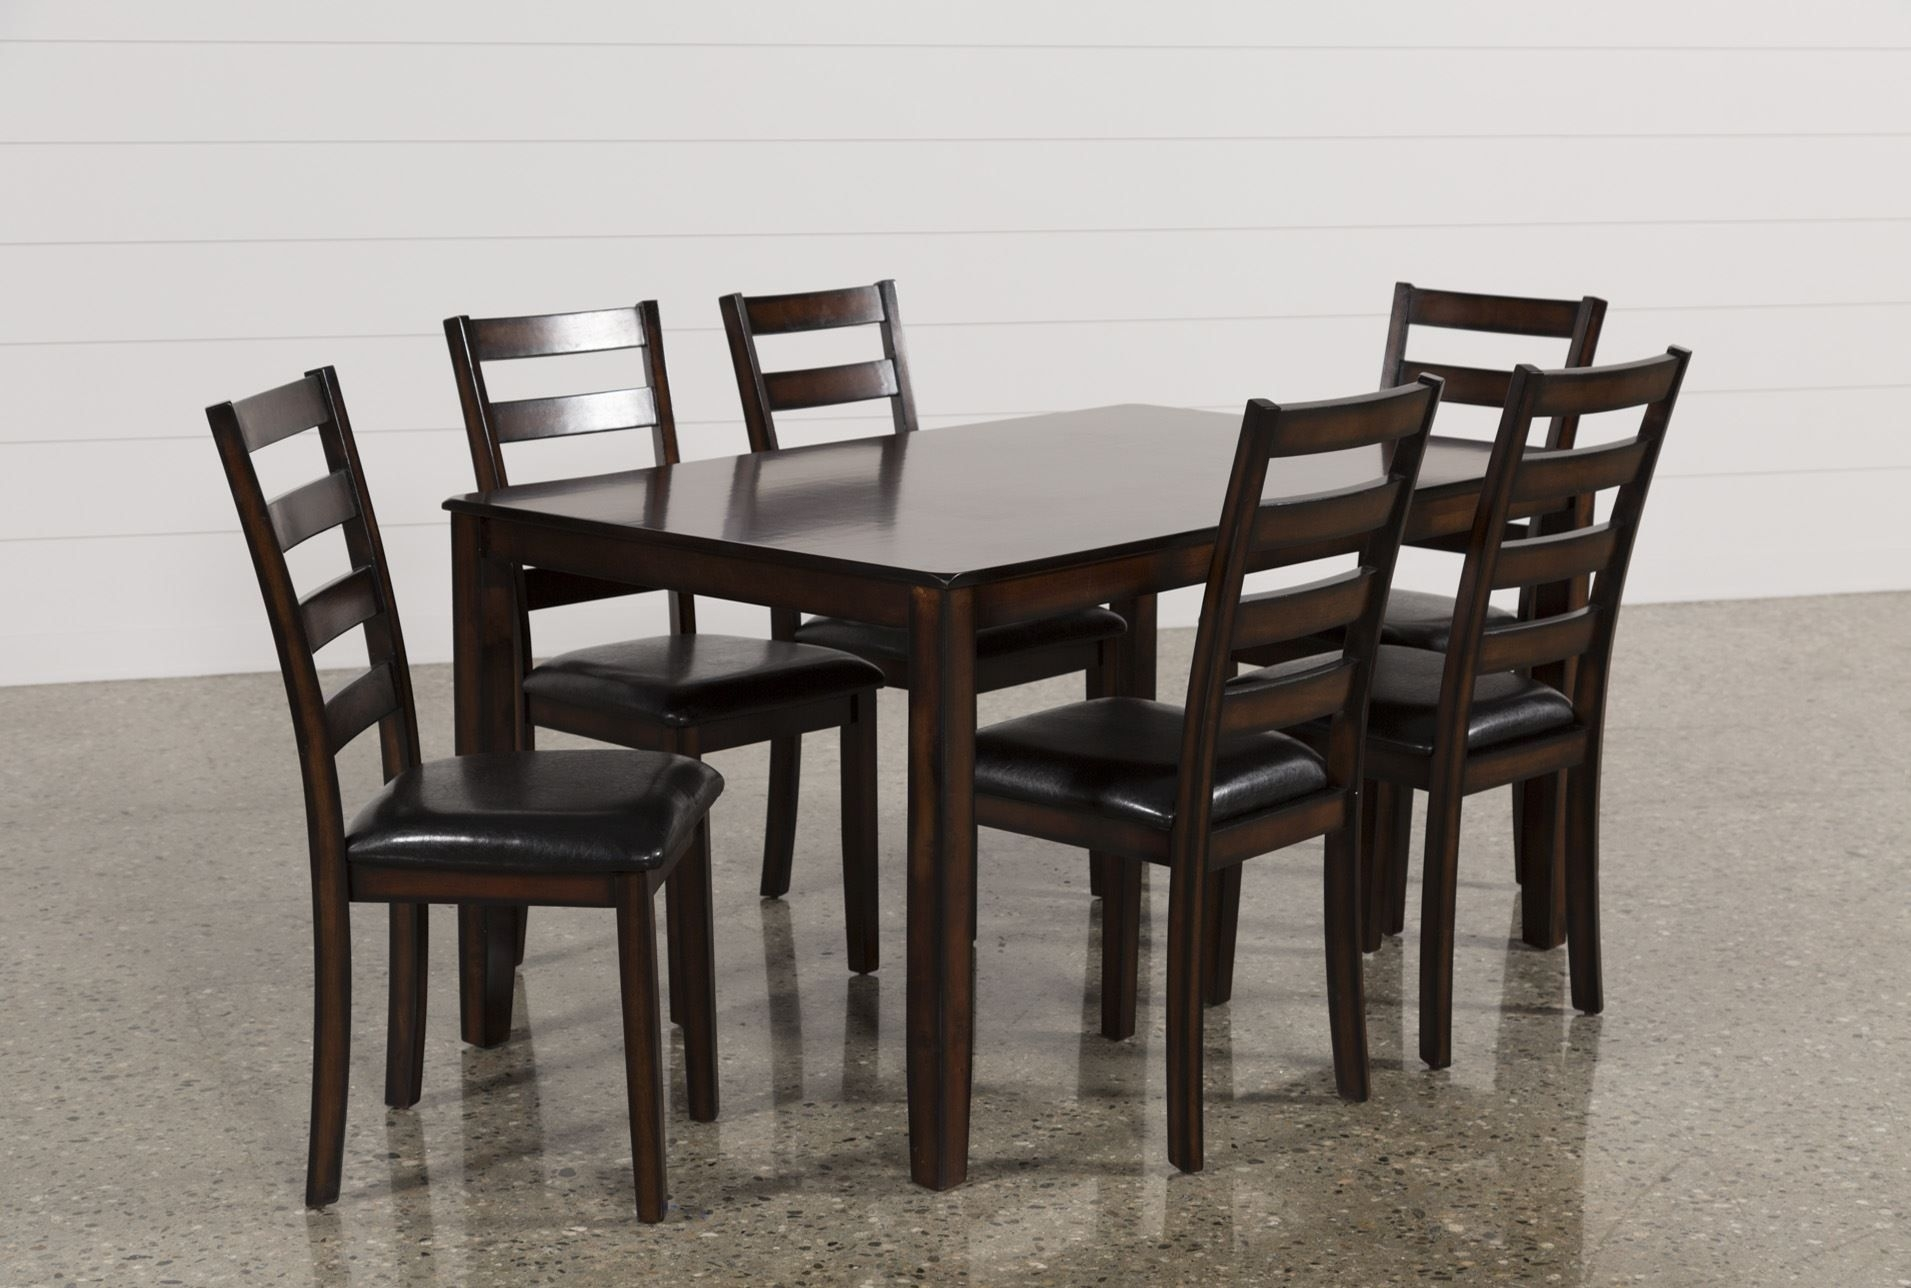 Sawyer 7 Piece Dining Set – Signature | Homestyle | Pinterest Inside 2018 Craftsman 7 Piece Rectangle Extension Dining Sets With Uph Side Chairs (Image 17 of 20)